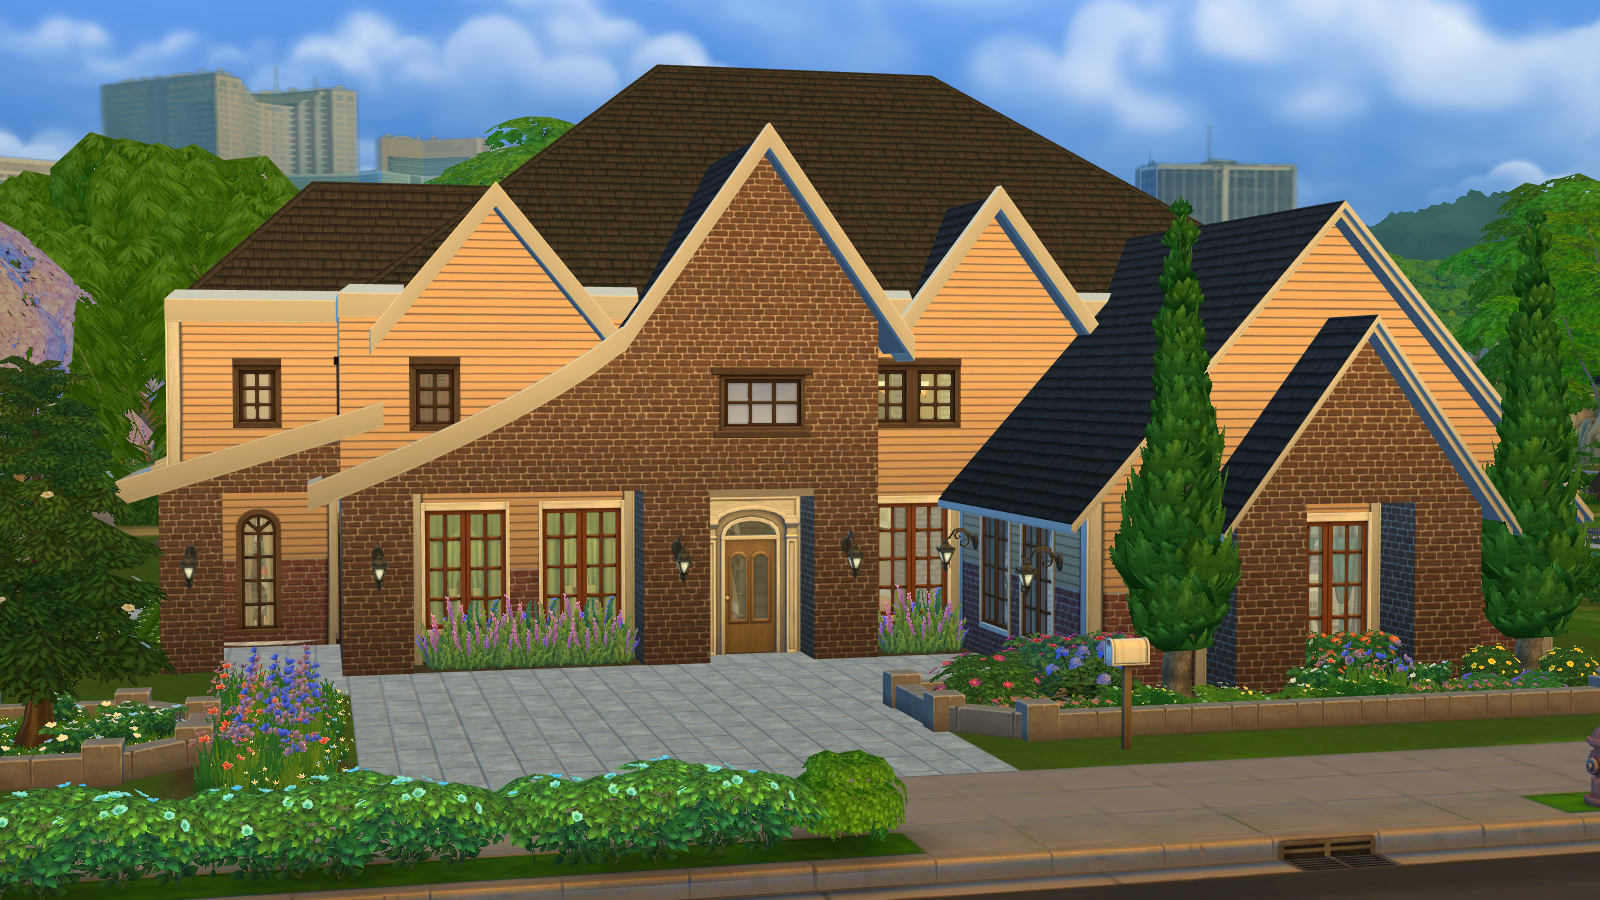 Lacey loves sims suburban dream for Big family house